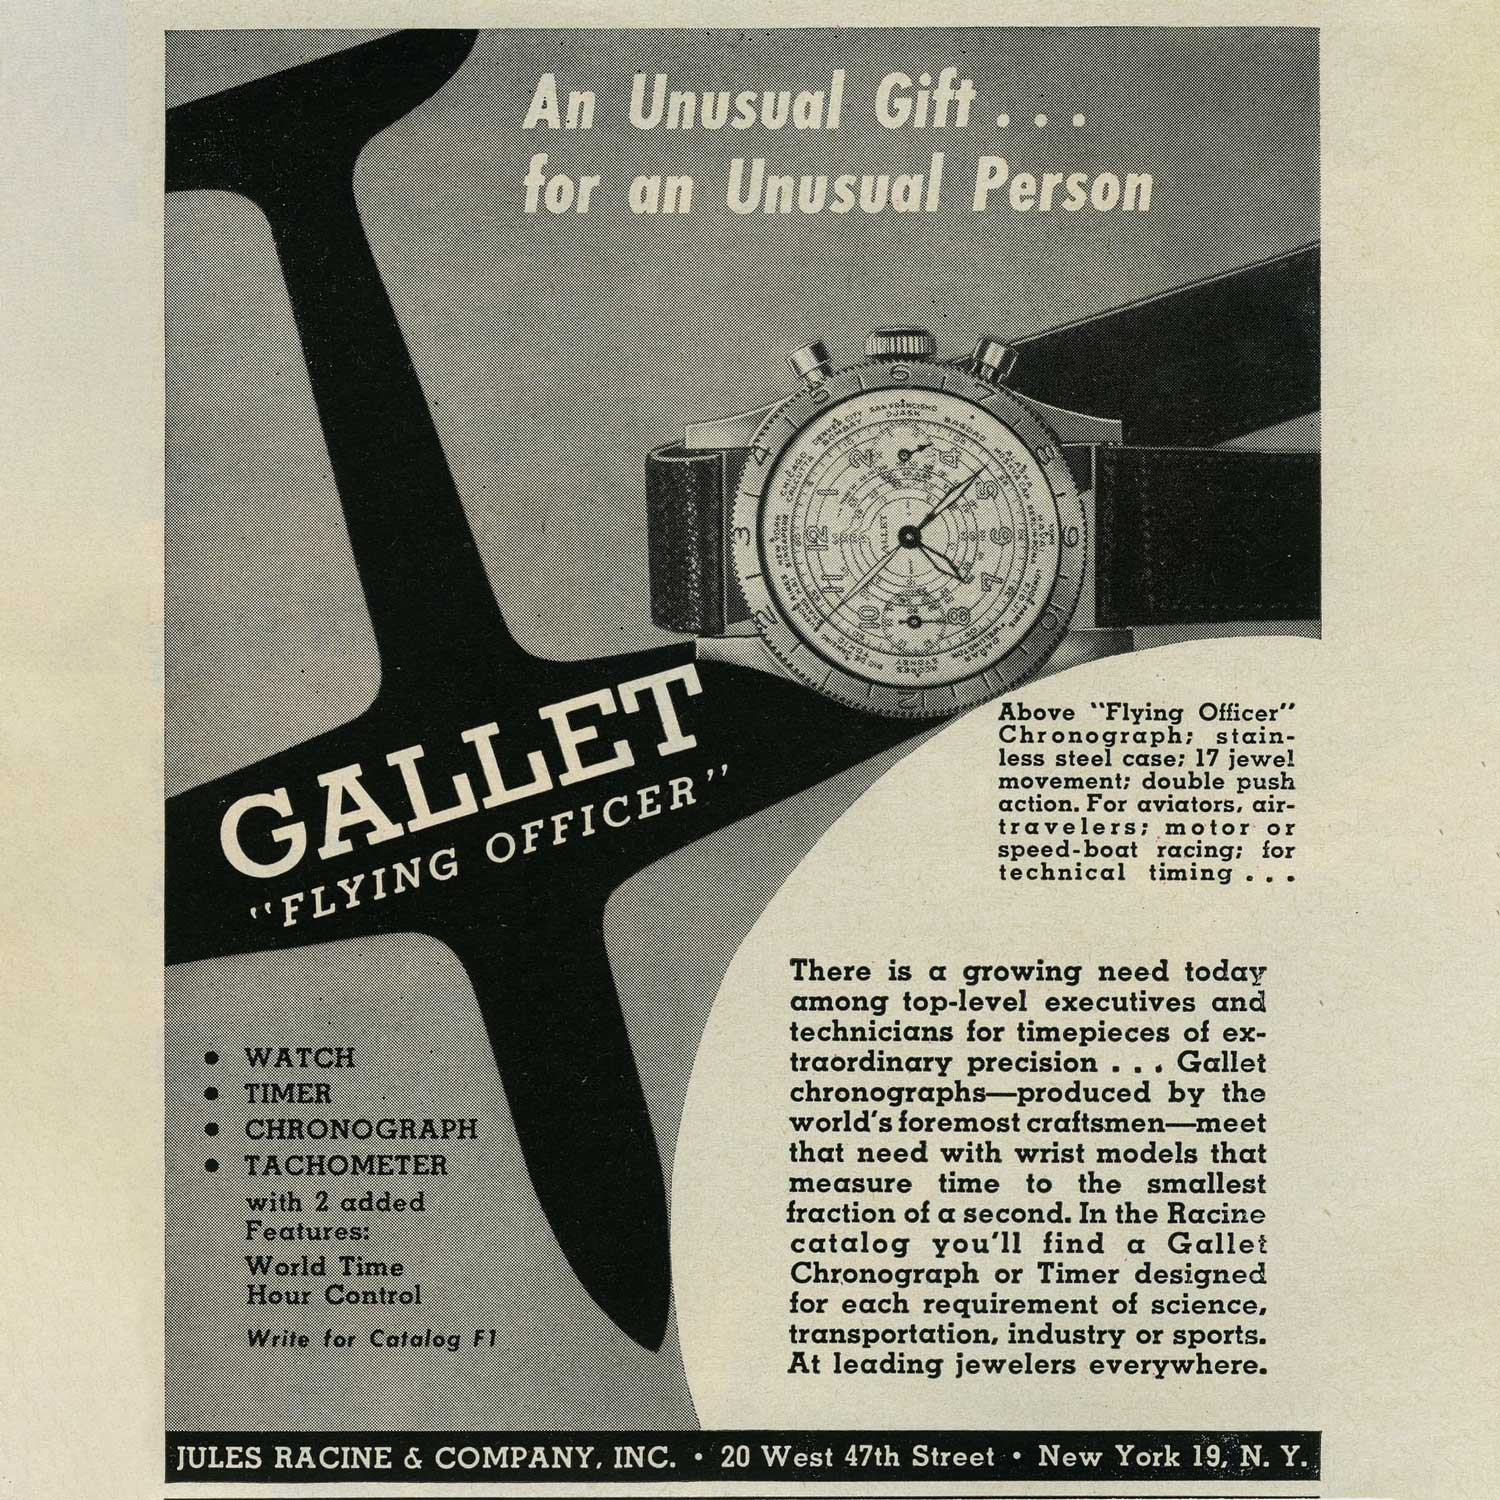 An old advertisement of the Gallet Flying Officer